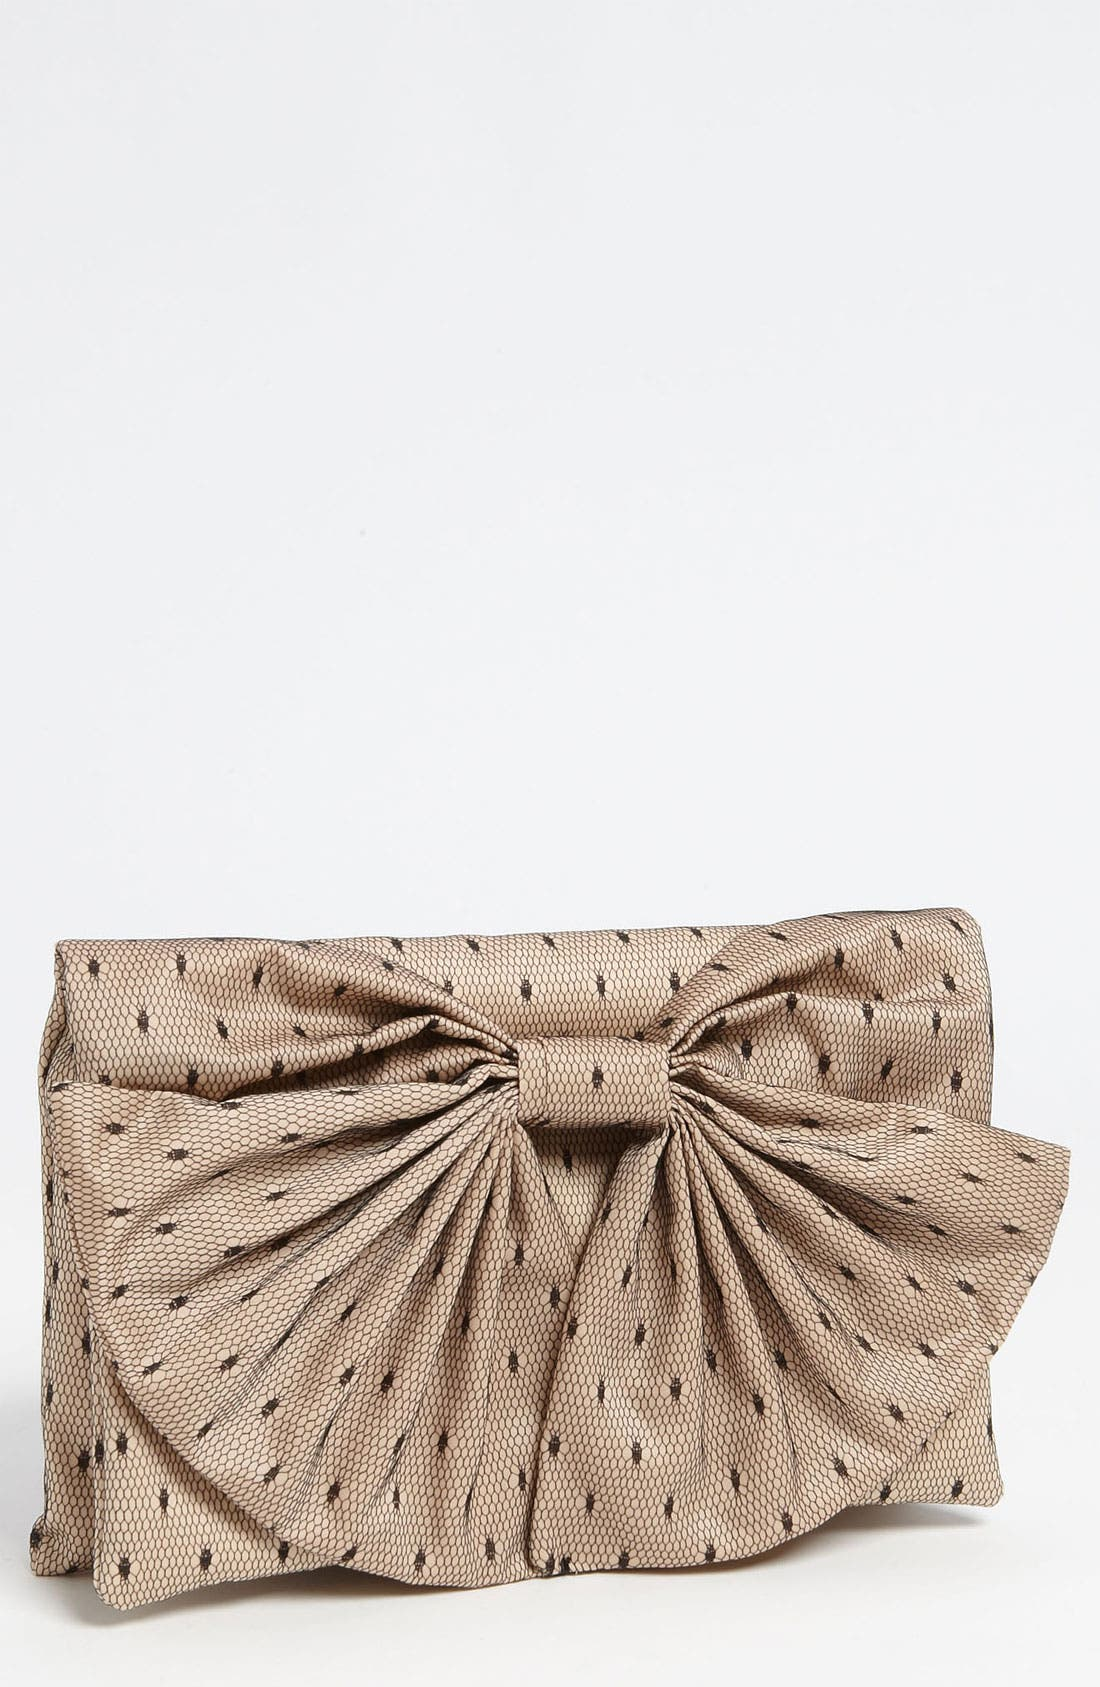 Alternate Image 1 Selected - RED Valentino 'Bow' Point d'Esprit Clutch